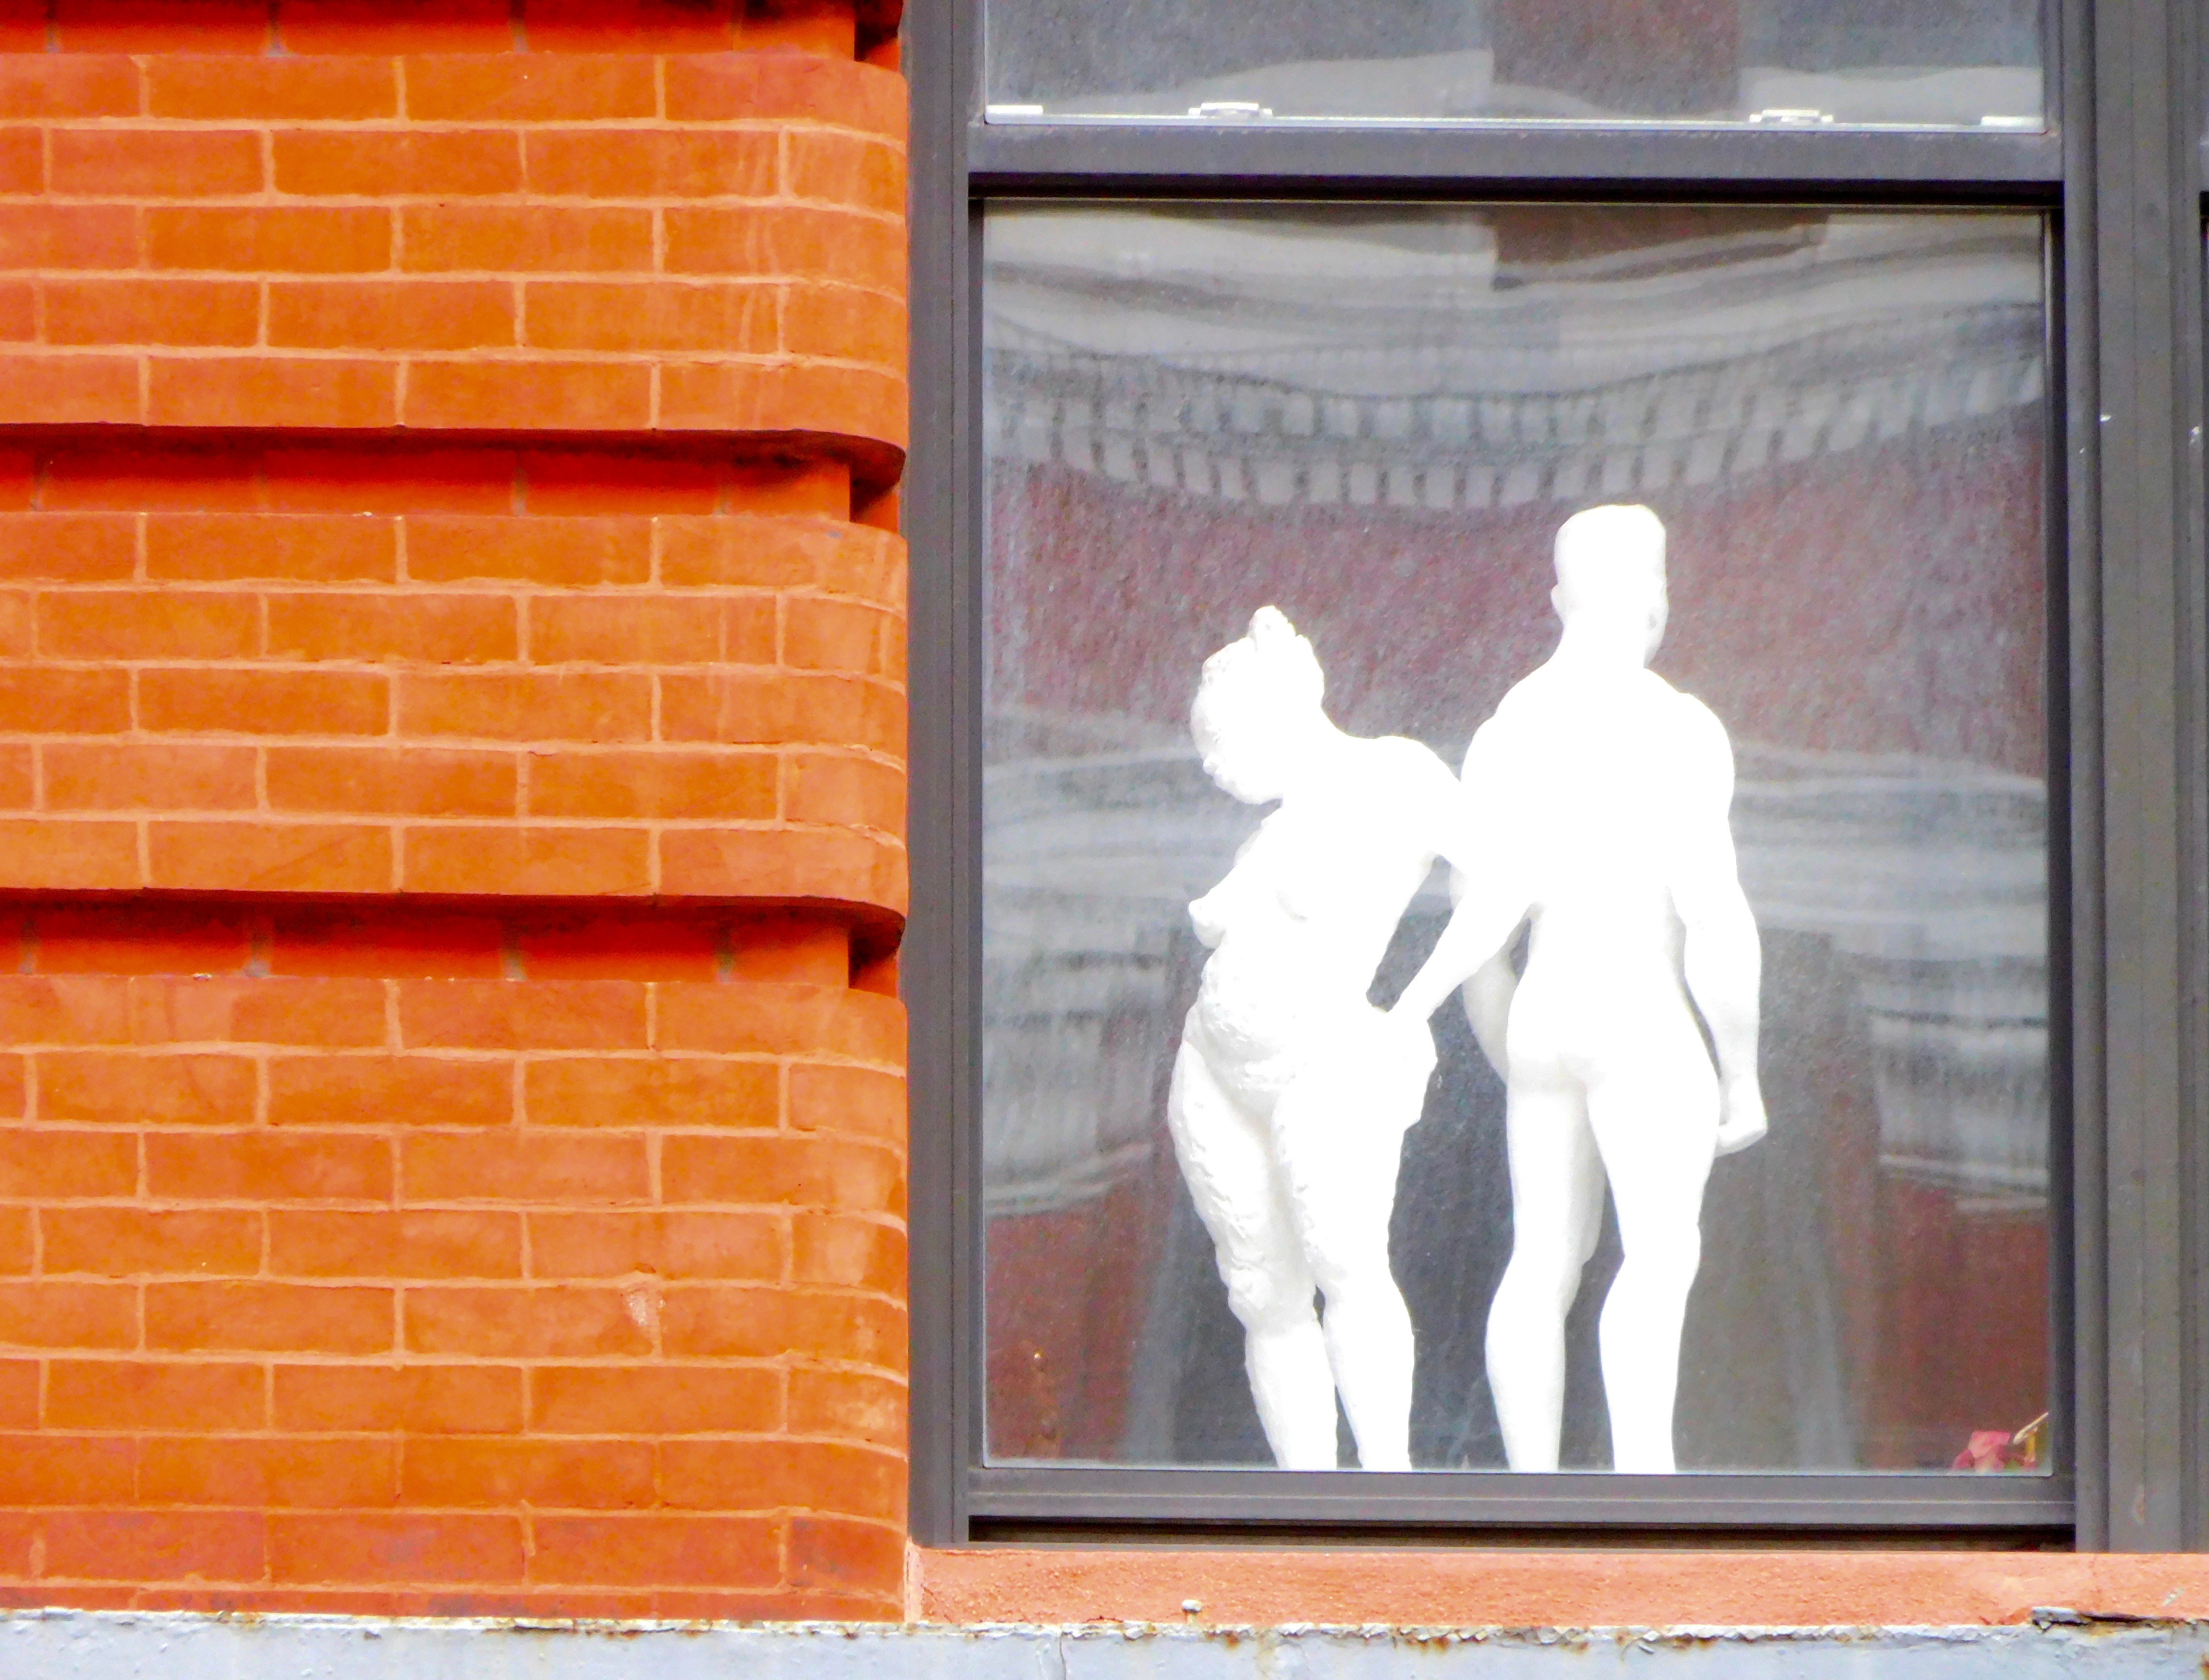 Two silhouettes stand in the window of a brick building.